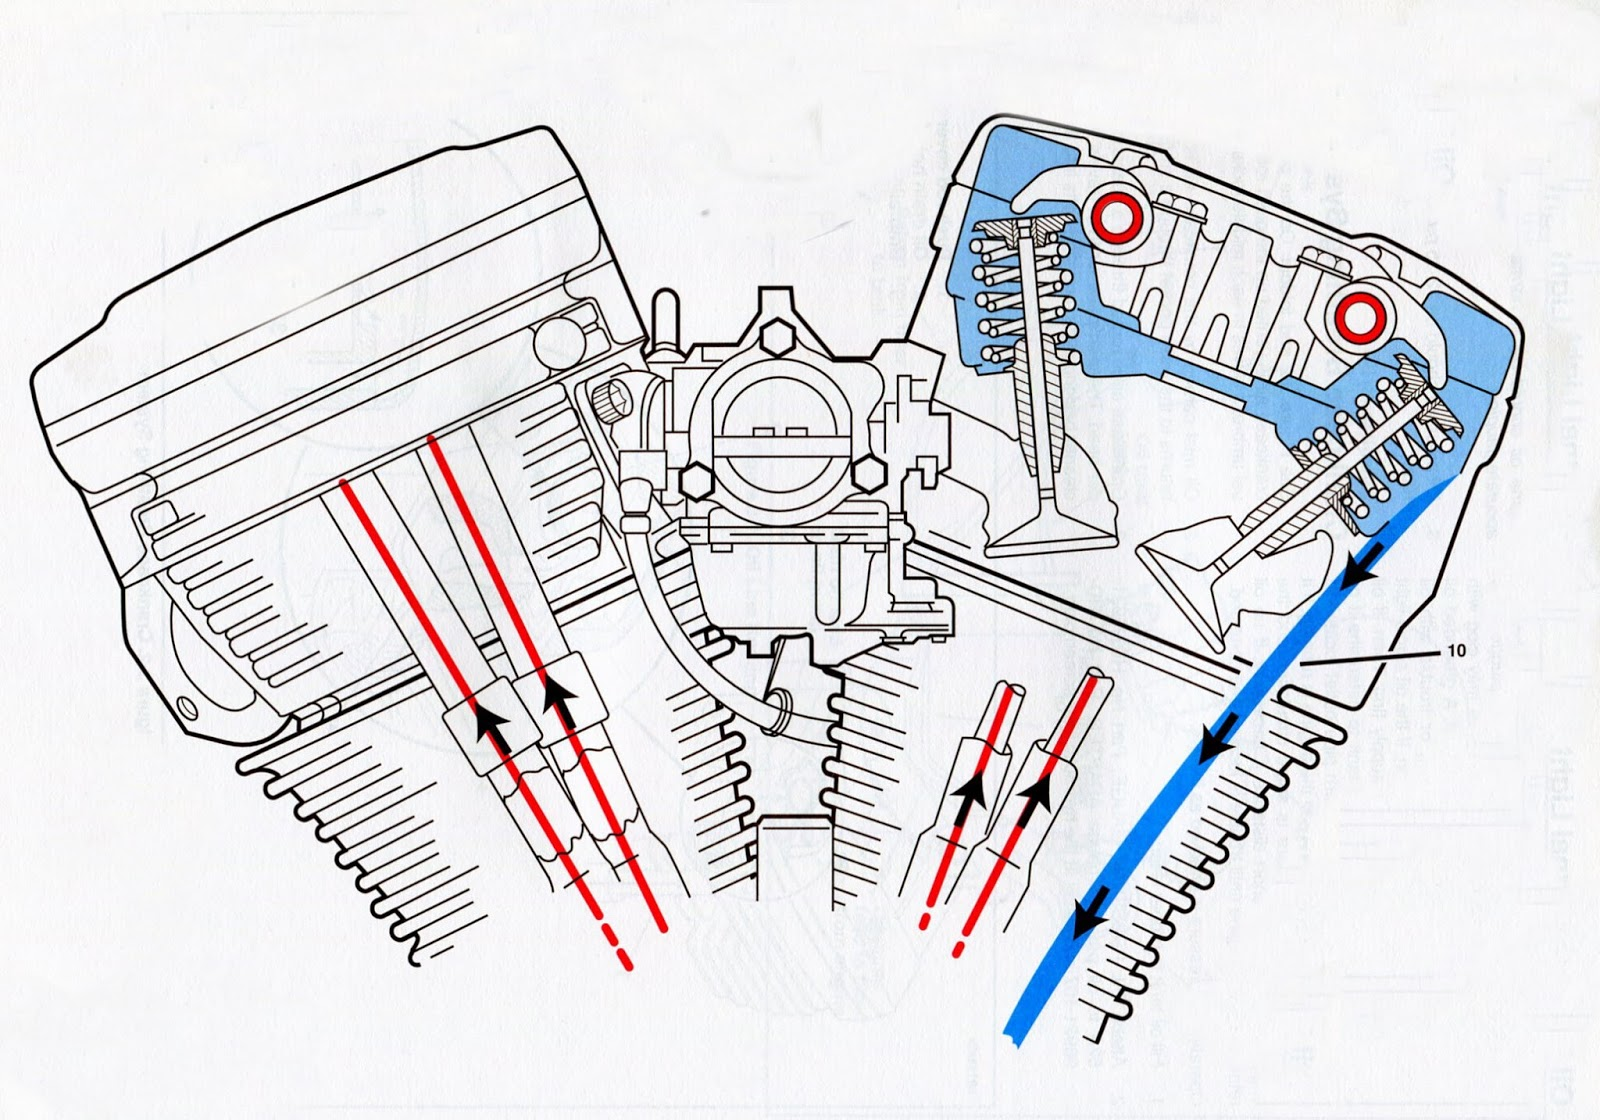 tech files harley davidson evolution oiling system \u0026 oil psi signalschematic b oil path through pushrod tubes and valves